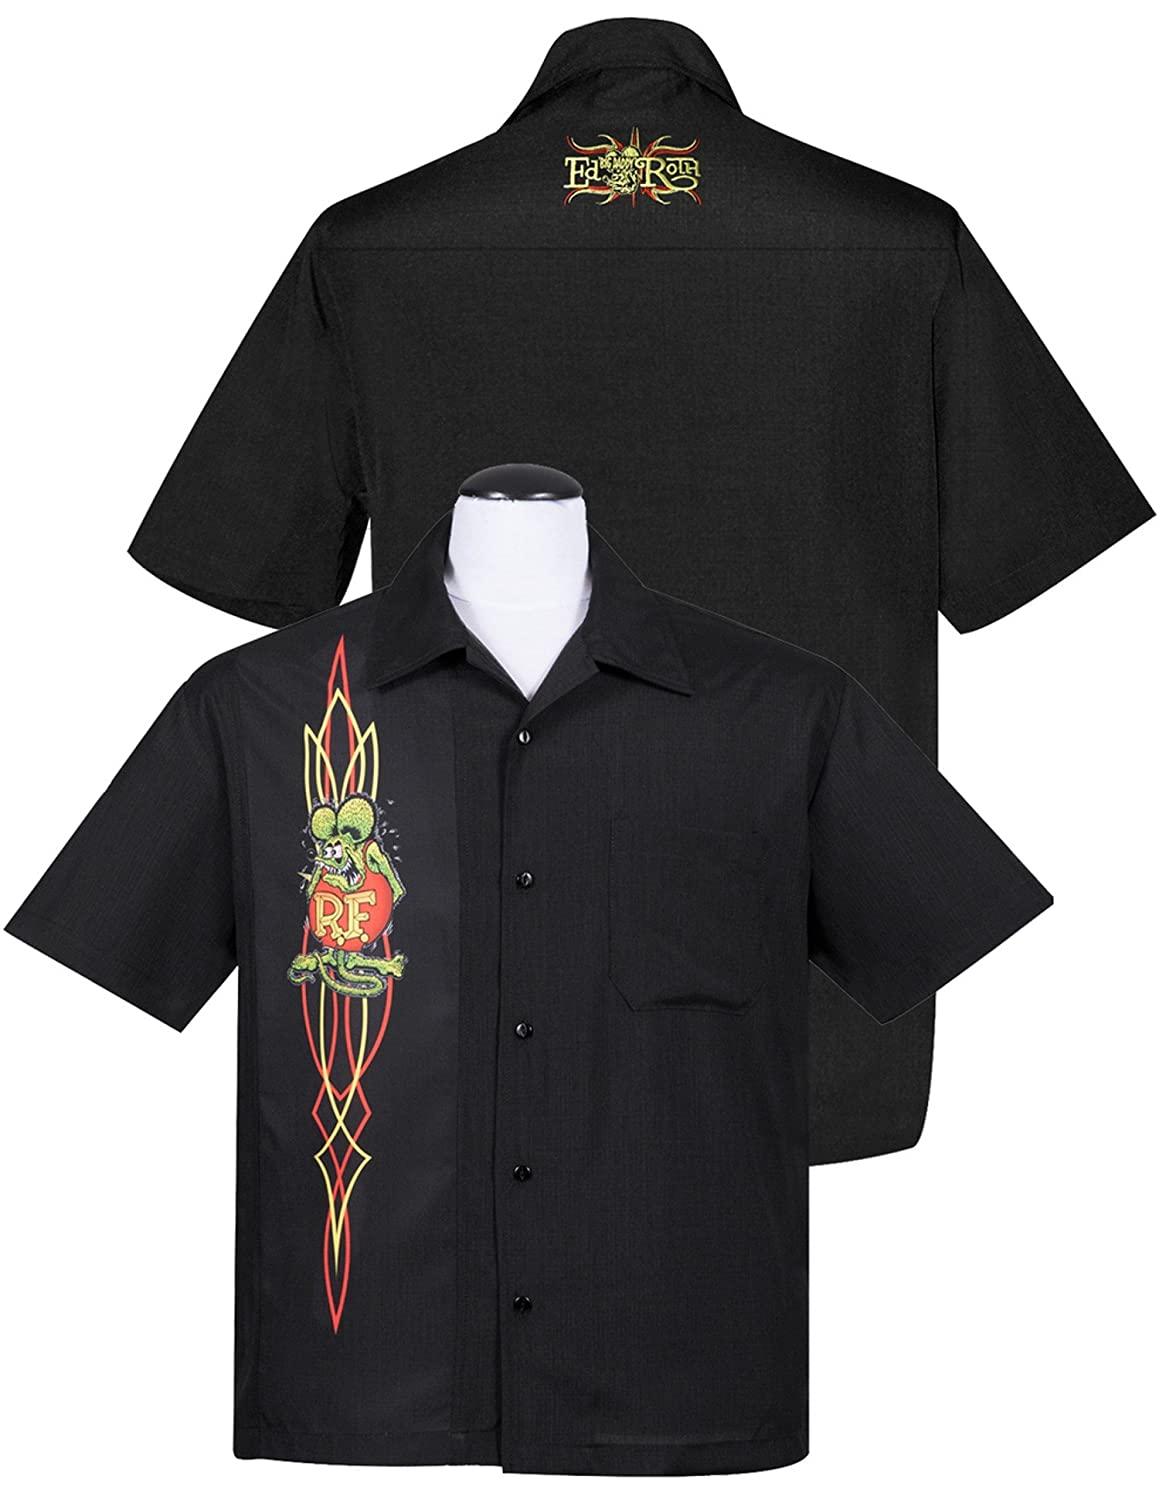 964d71197 Rat Fink Pinstripe Panel Button Up Hot Rod Character at Amazon Men's  Clothing store: